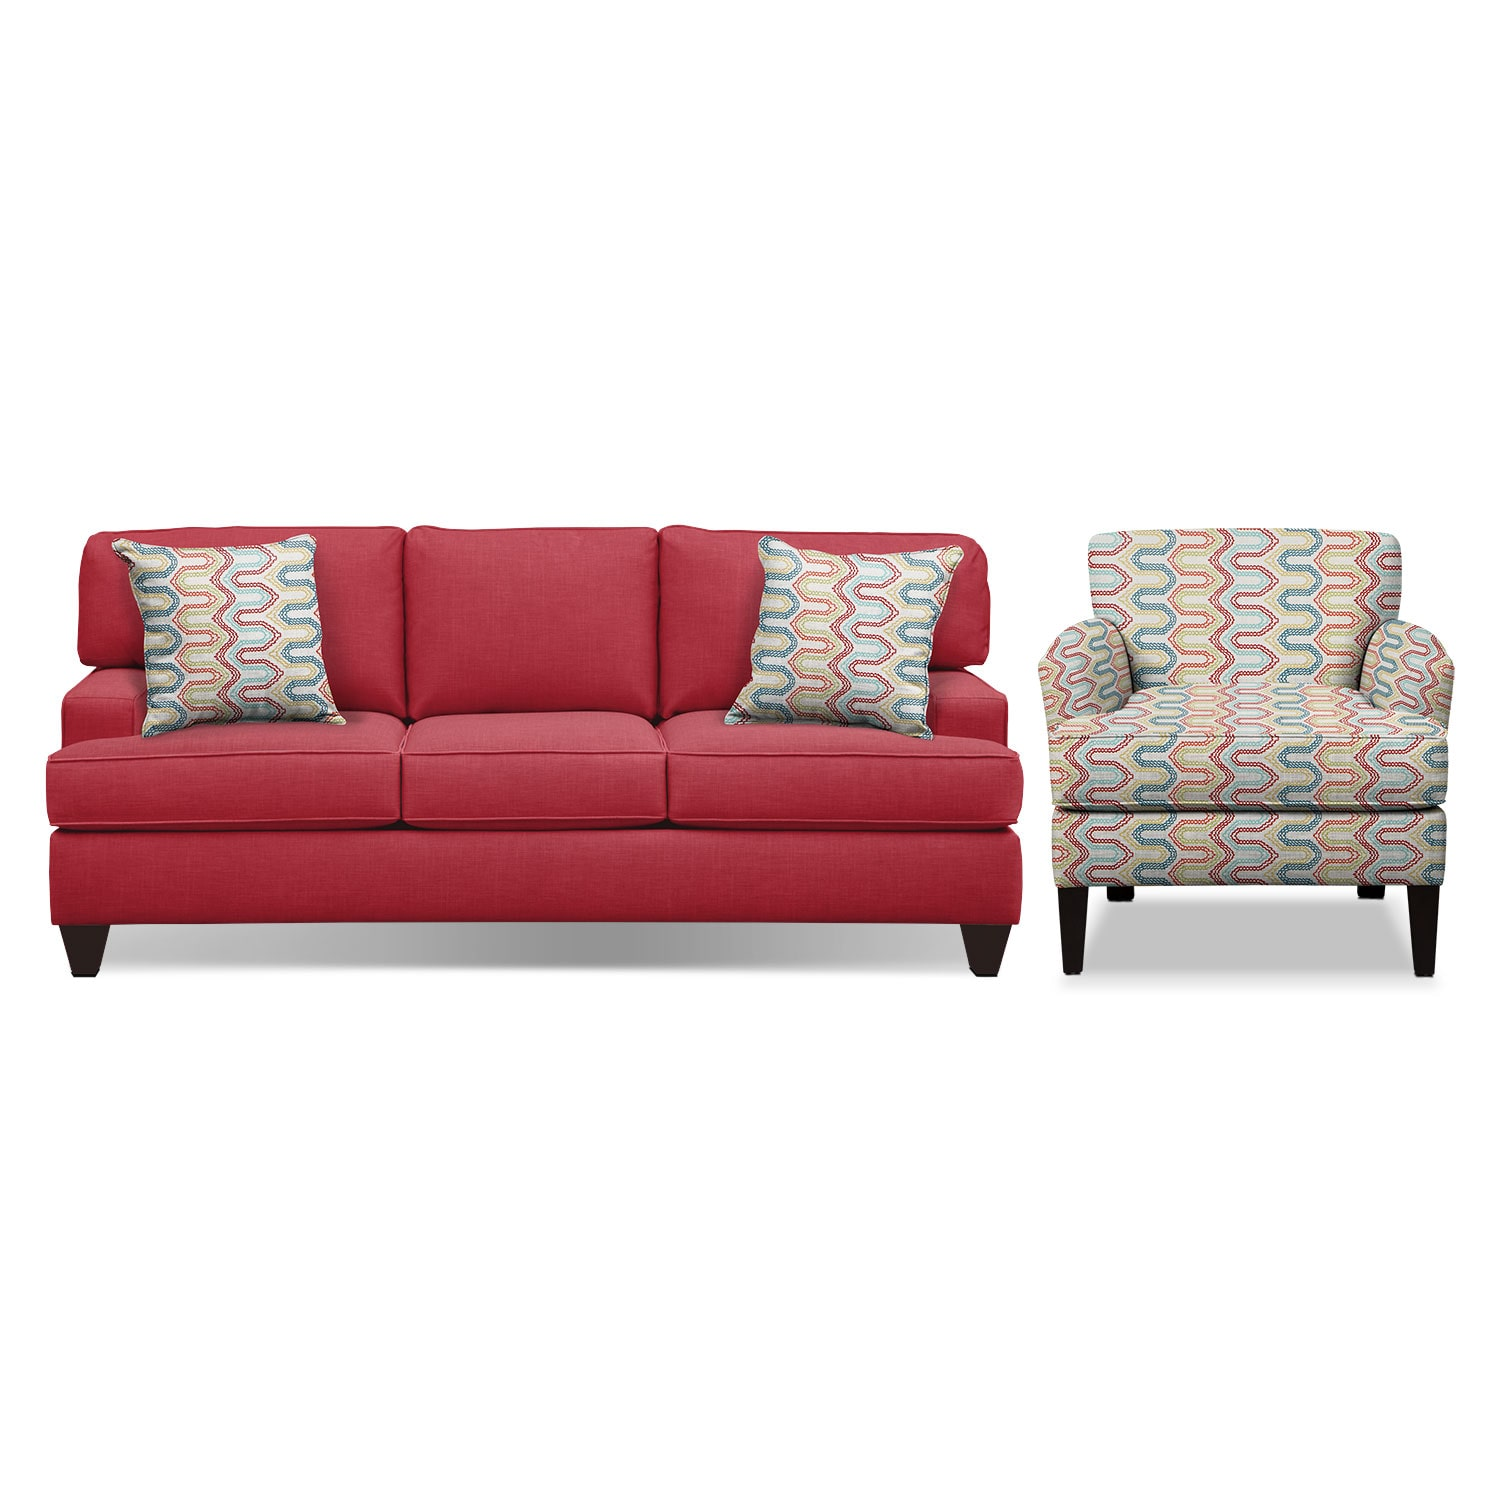 "Living Room Furniture - Conner Red 87"" Memory Foam Sleeper Sofa and Accent Chair Set"